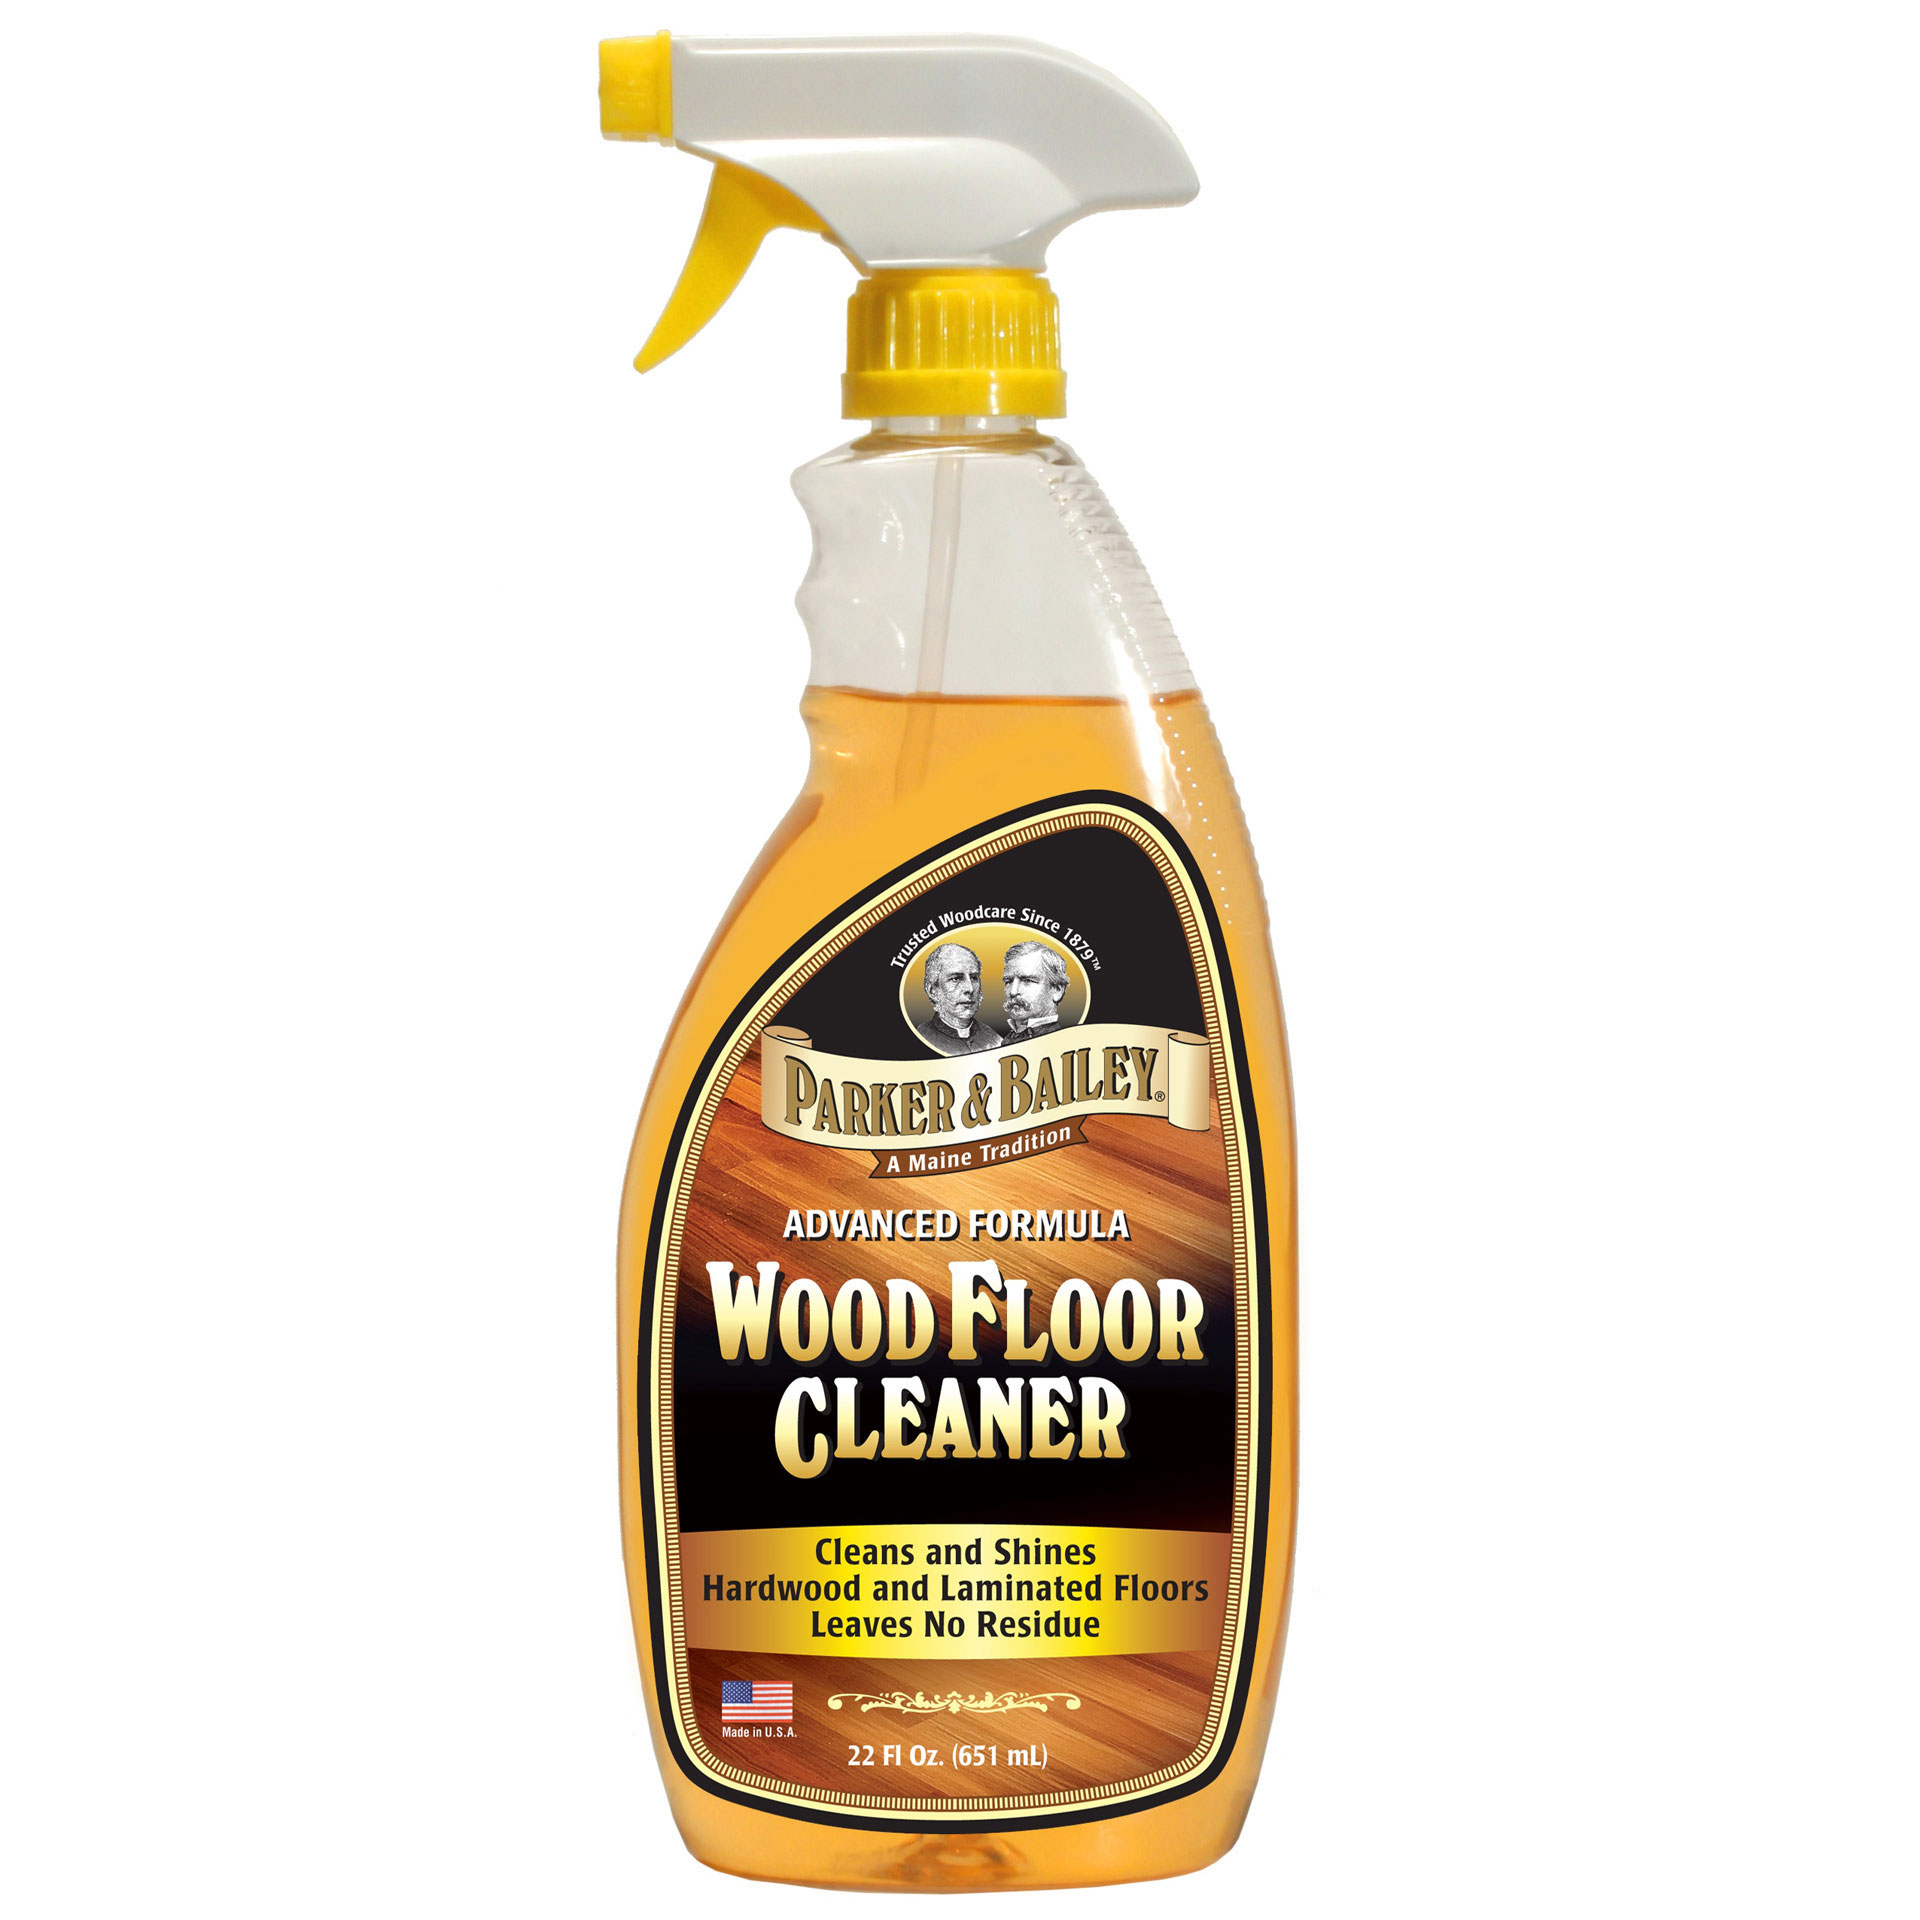 wood floor cleaner amp bailey wood floor cleaner review 29324